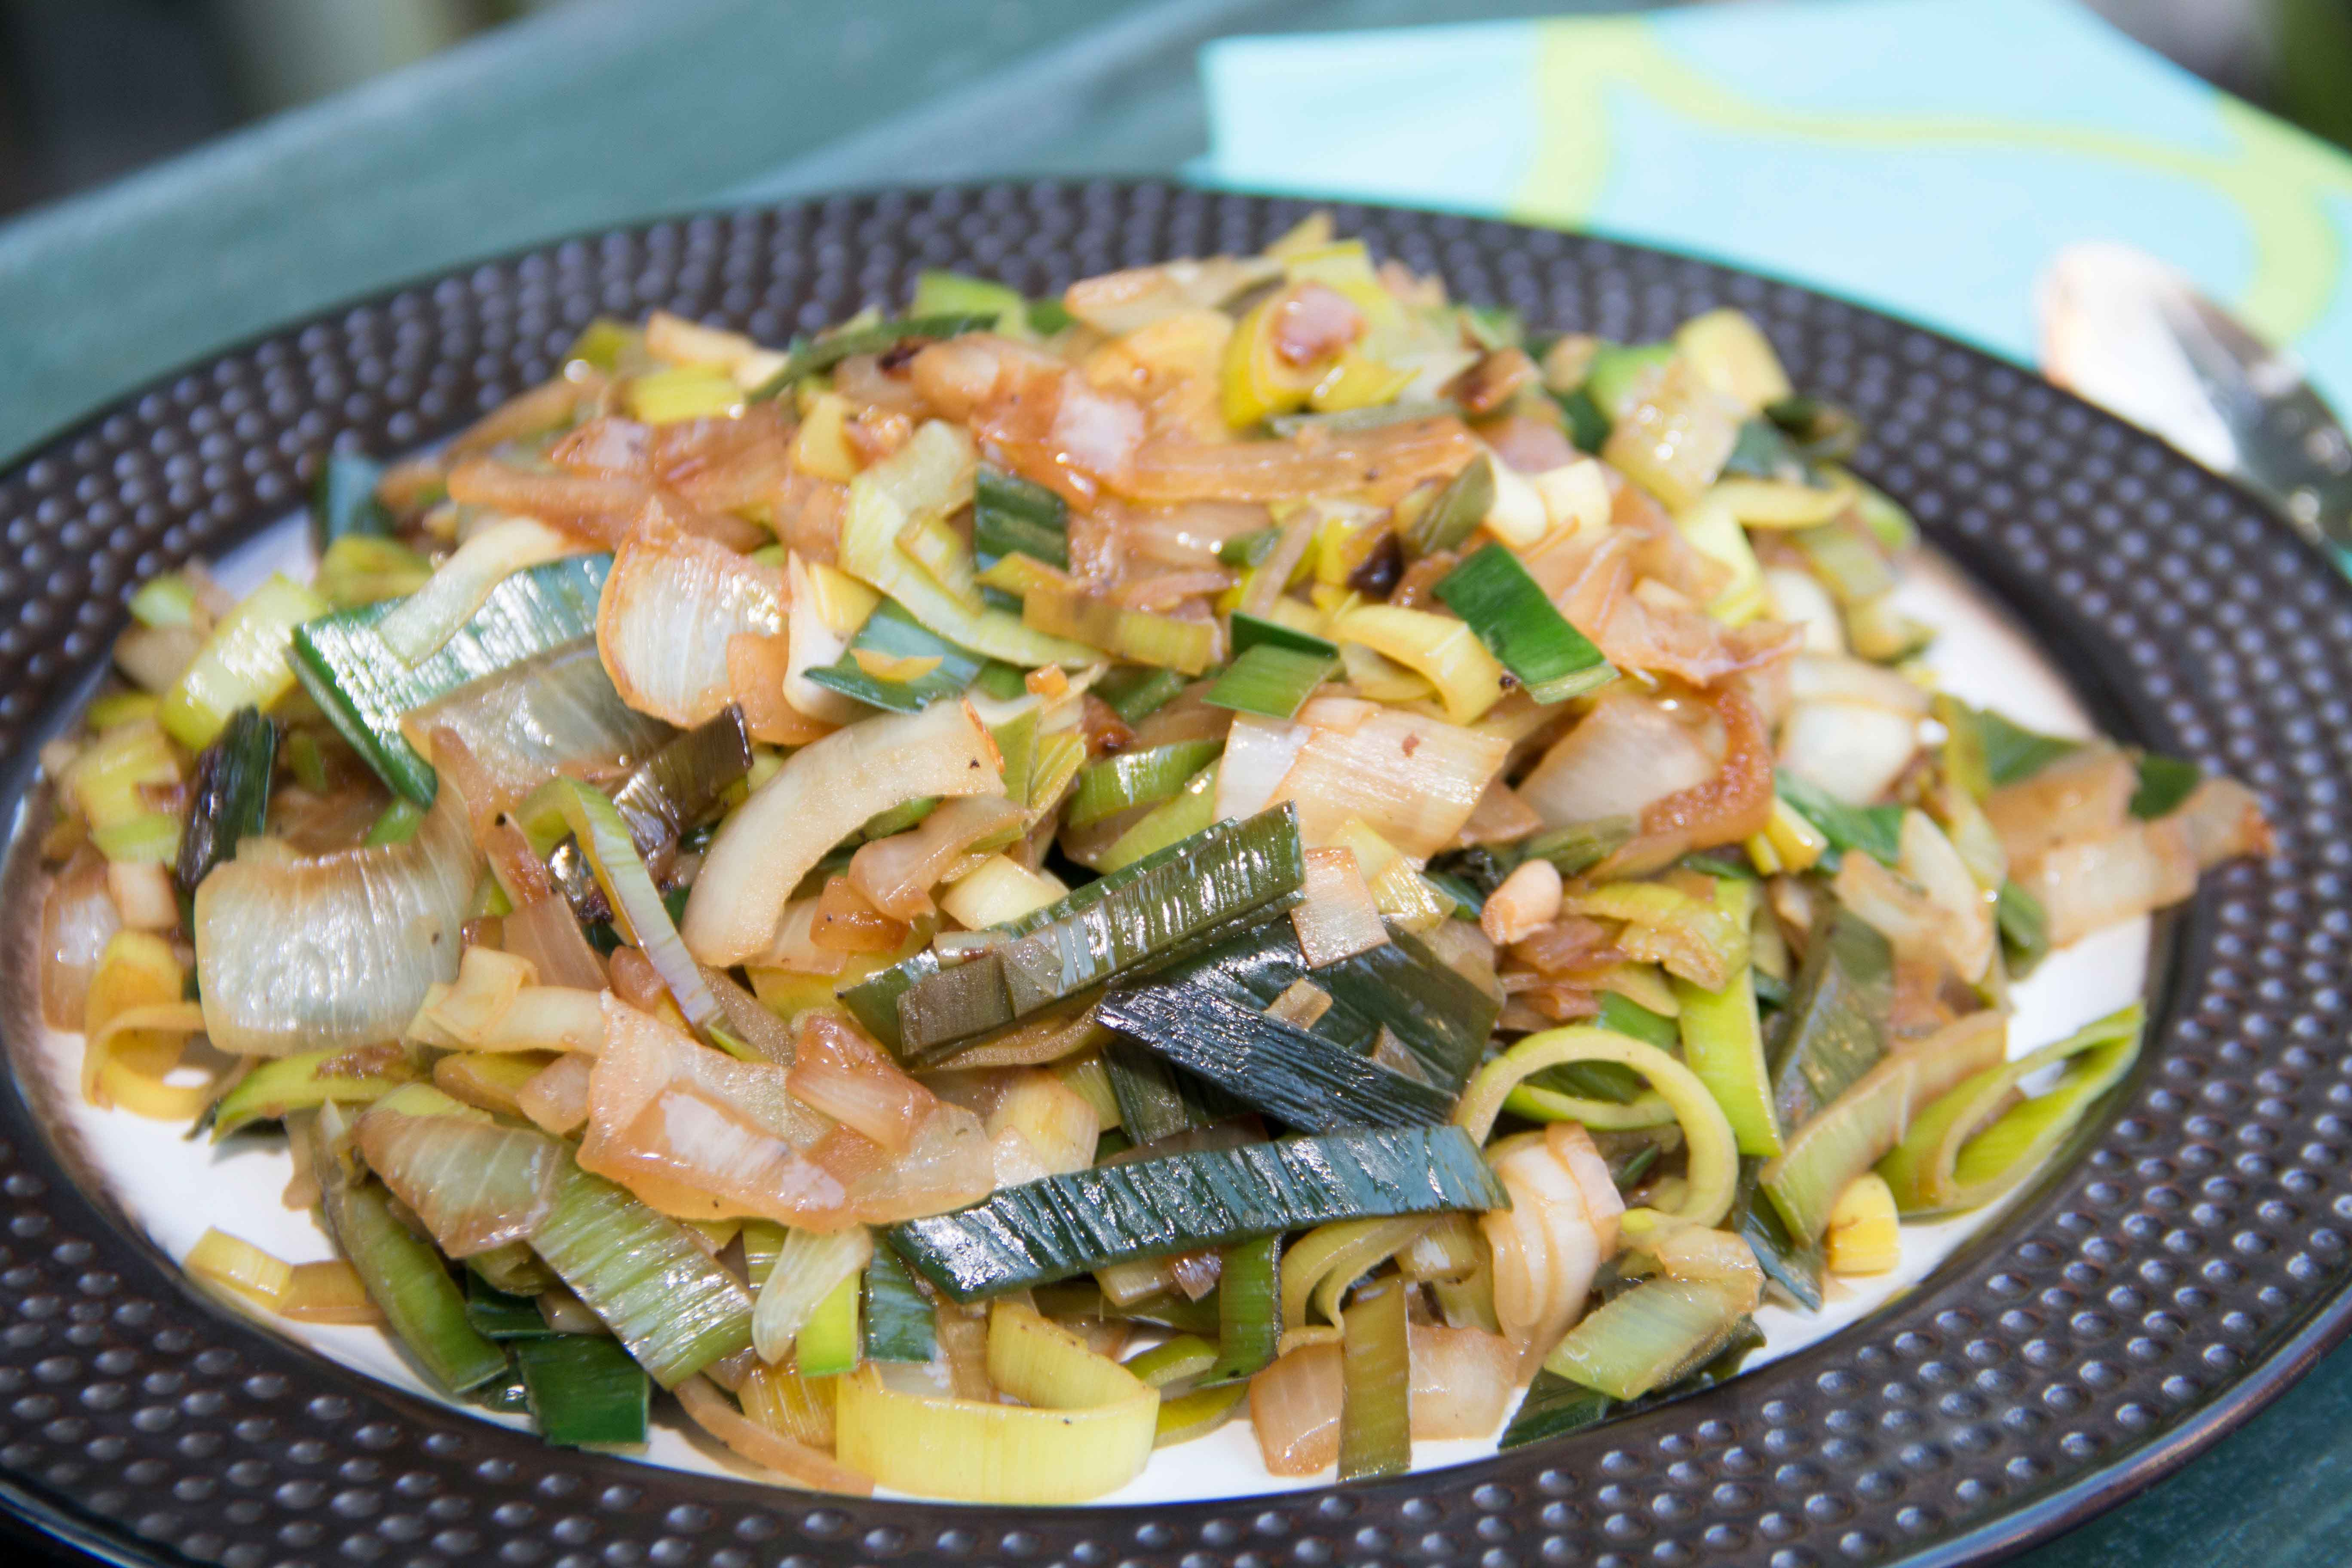 Leek Recipe: Make This Savory Side that Goes with Any Meal!